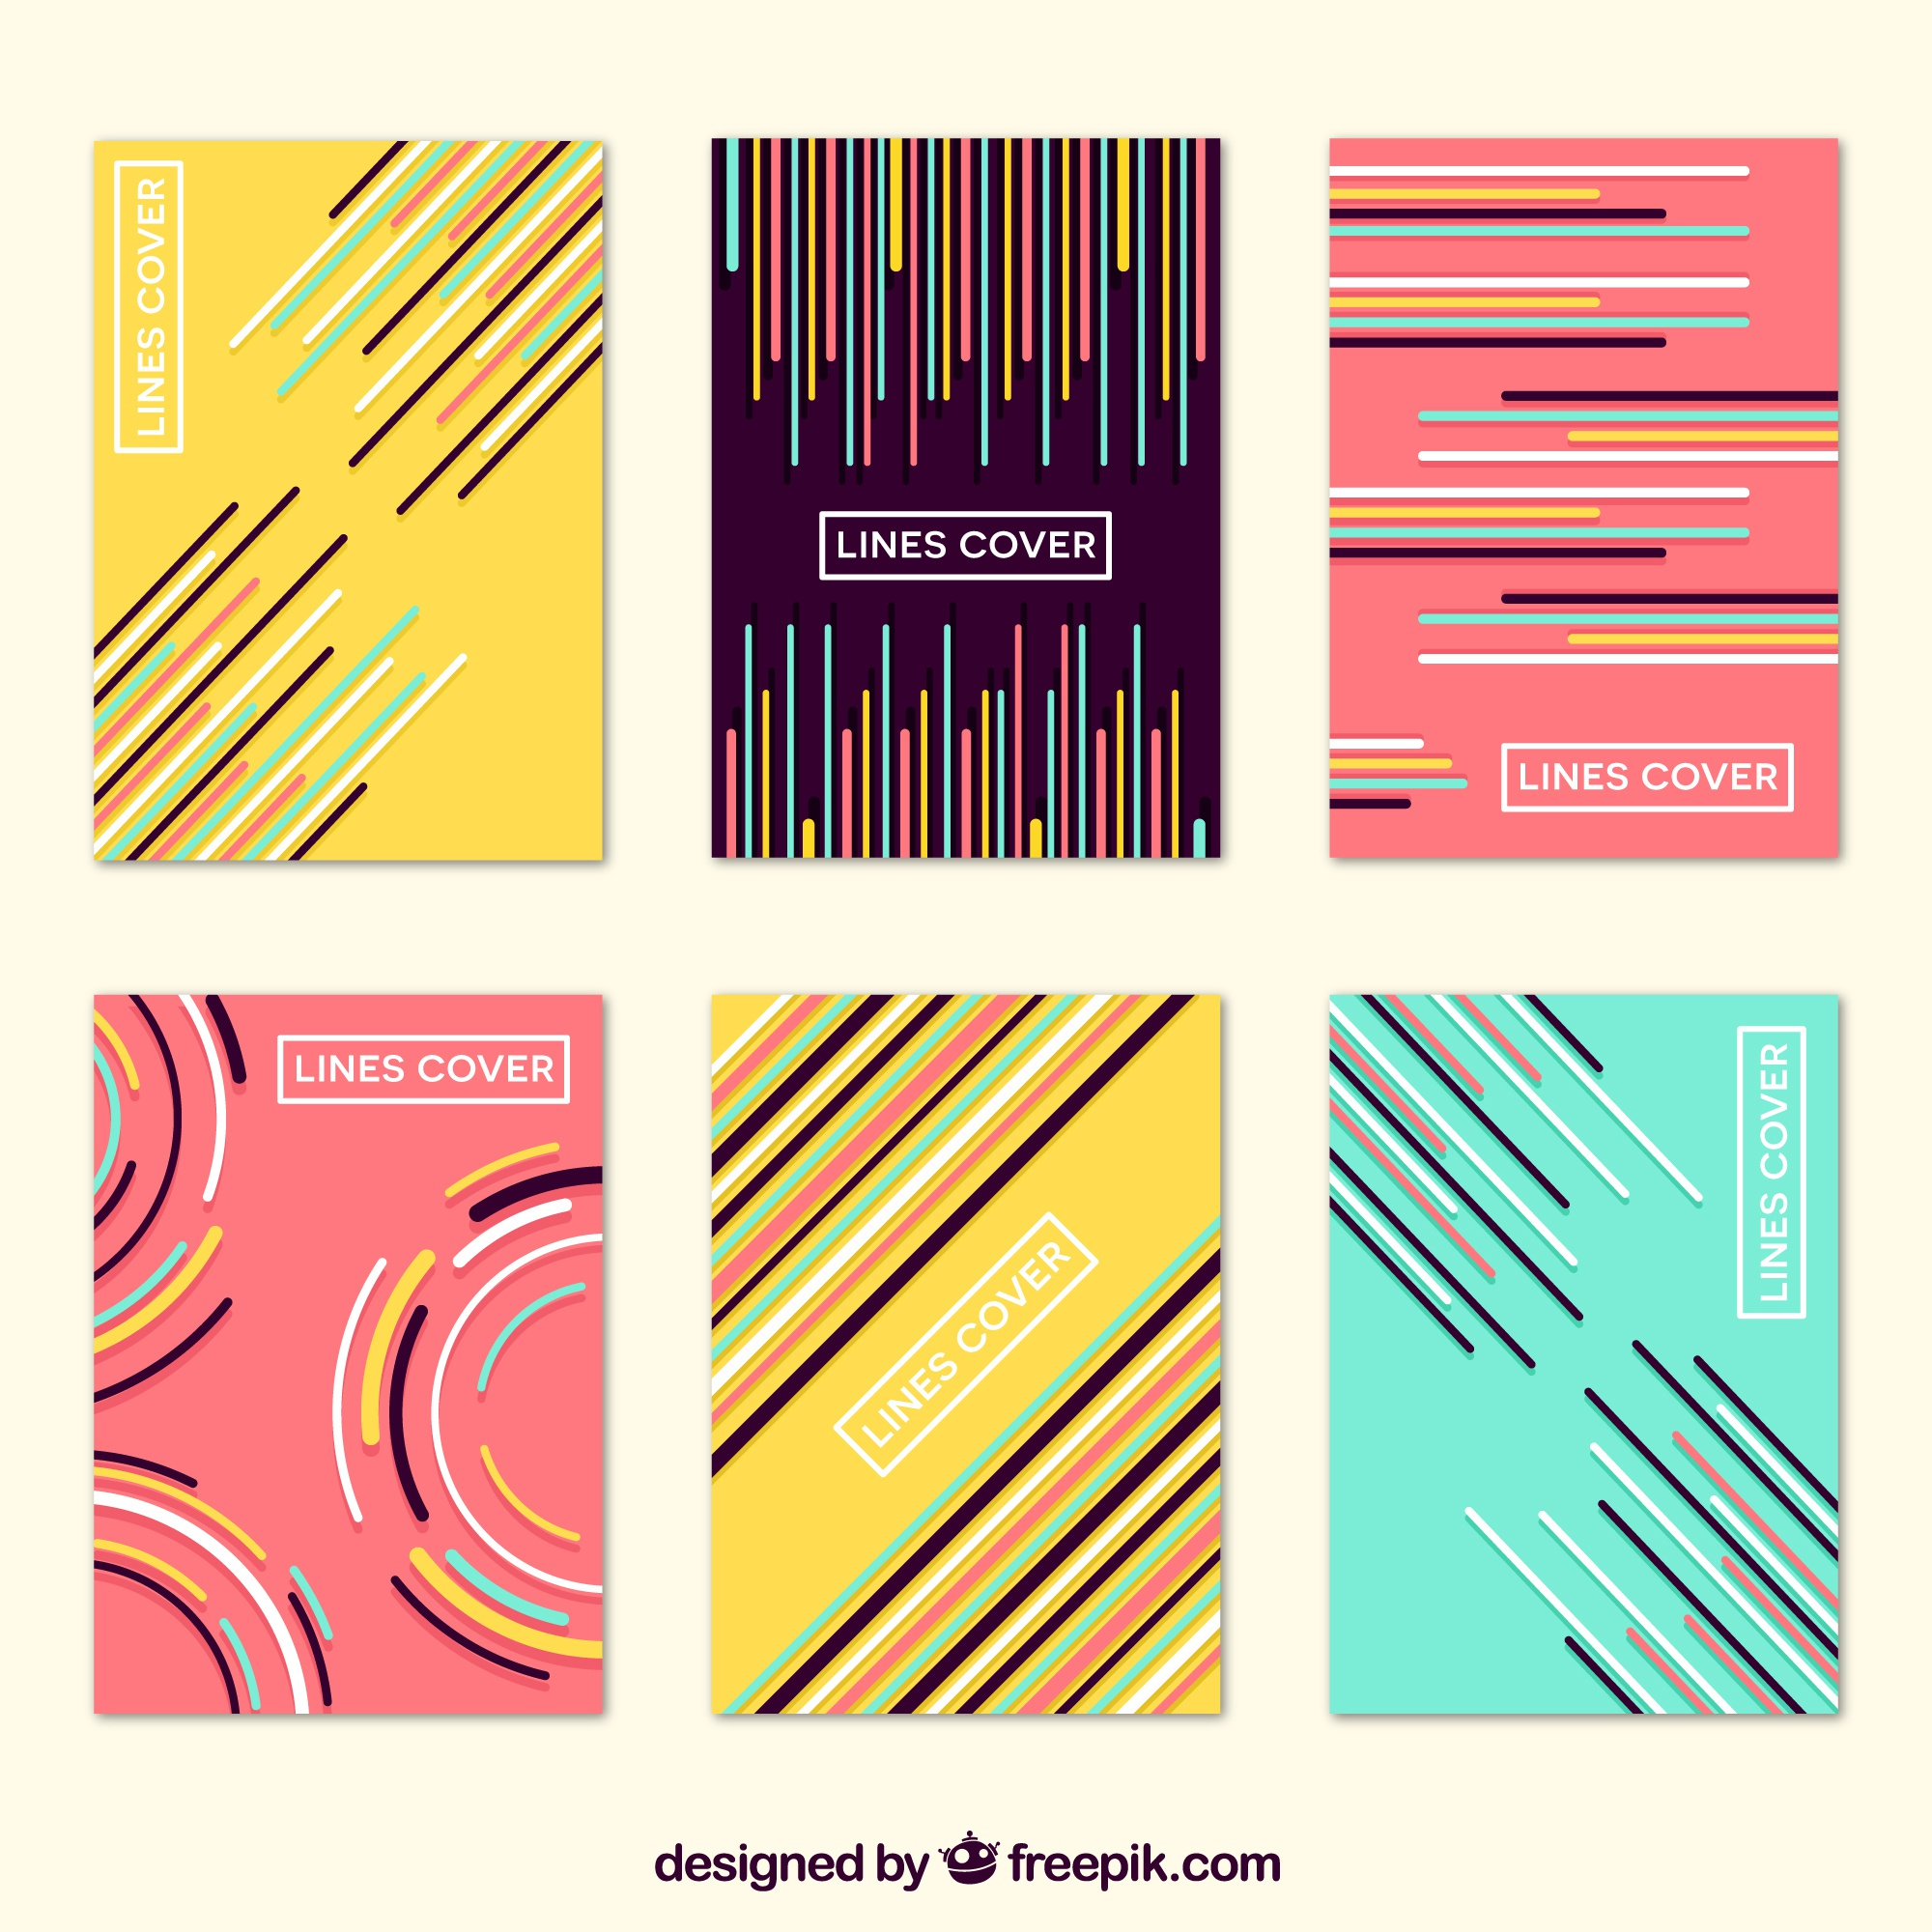 Covers collection with colors and lines